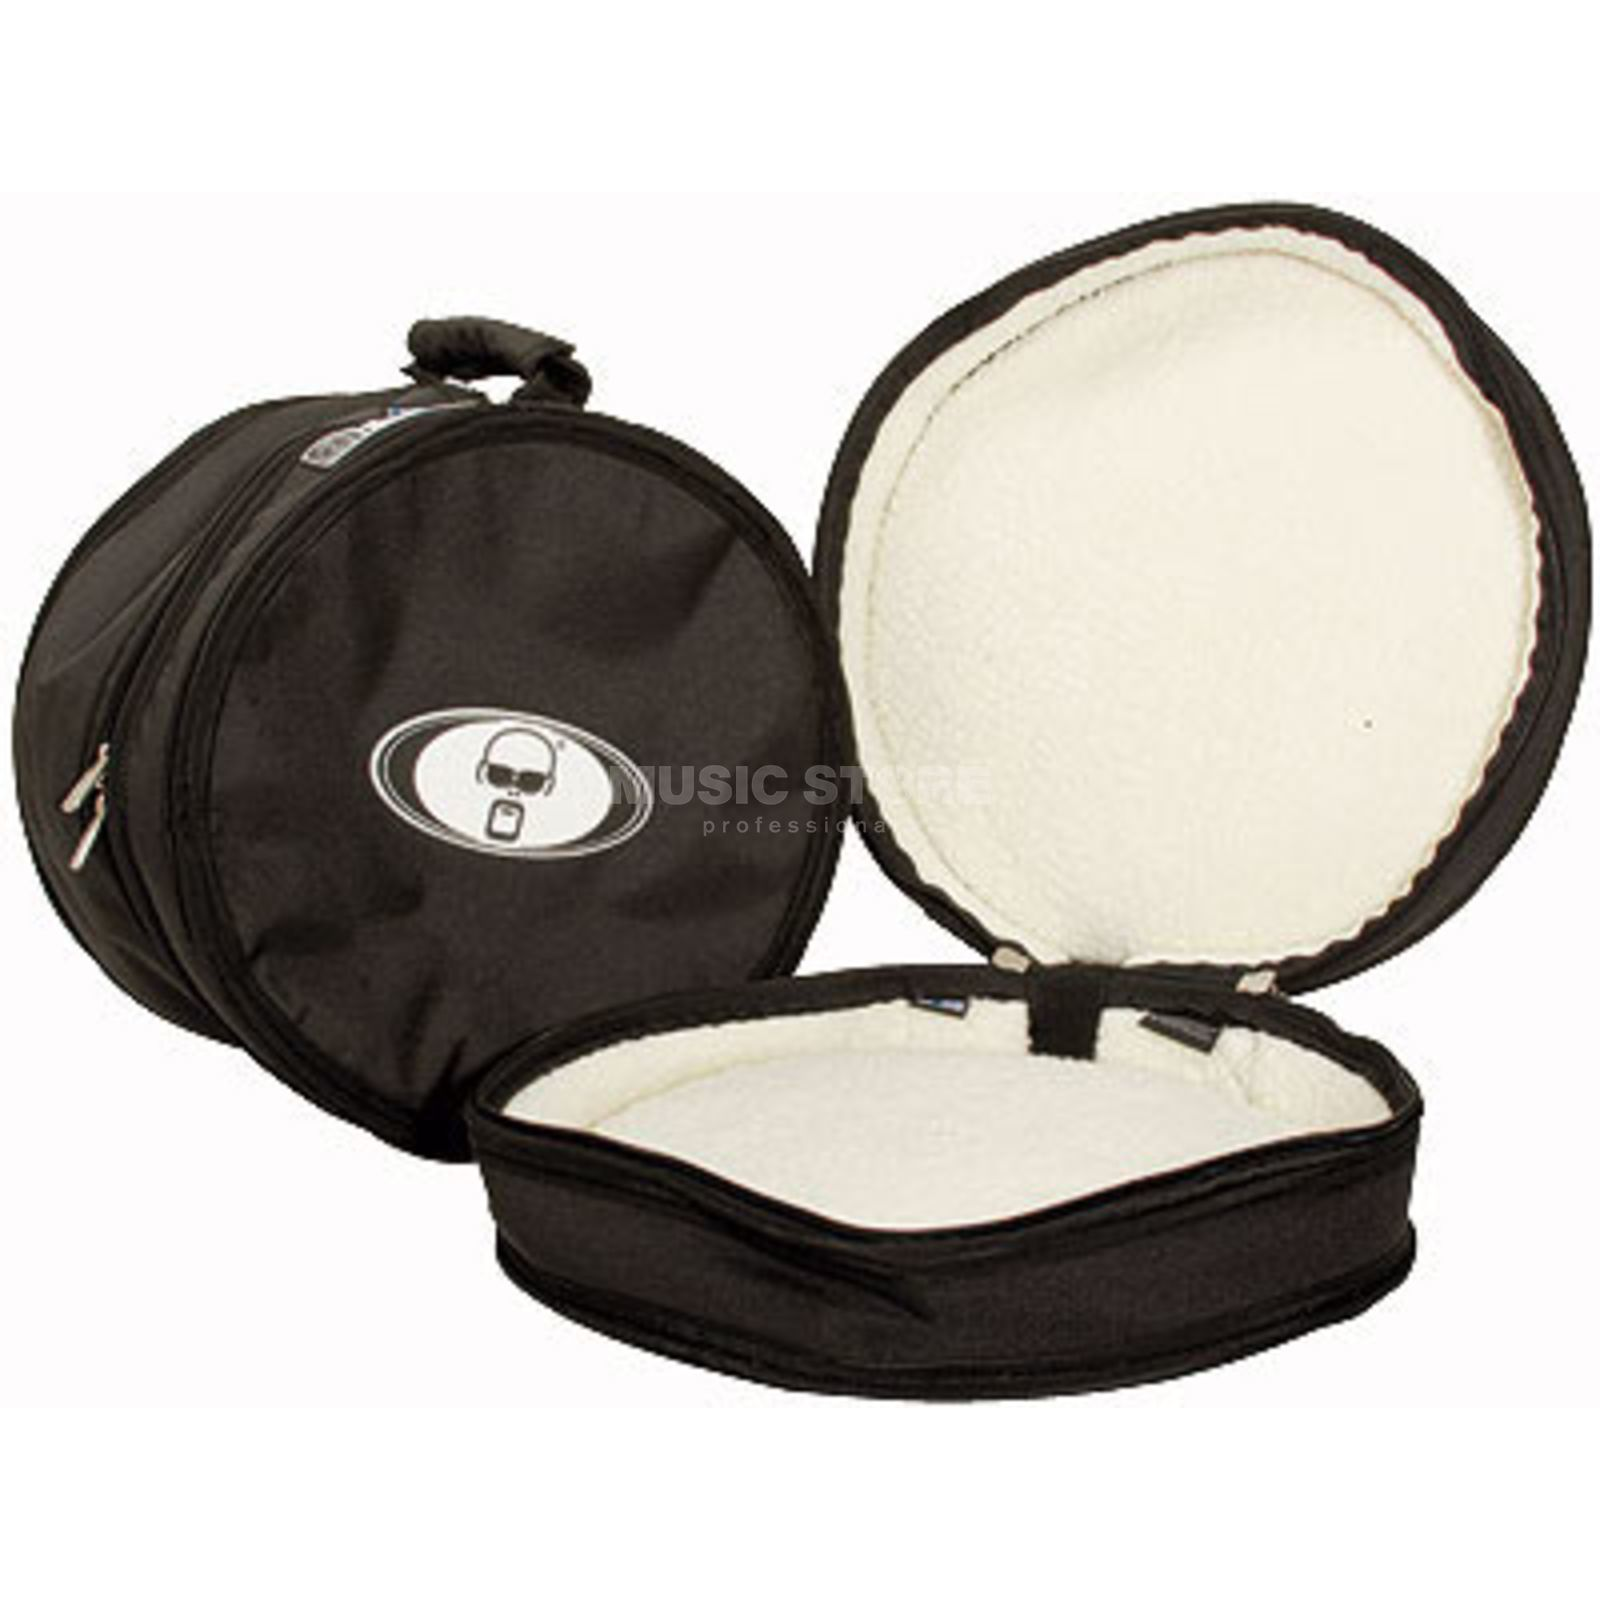 "Protection Racket Tom Bolso 4013, 13""x11"" Imagen del producto"